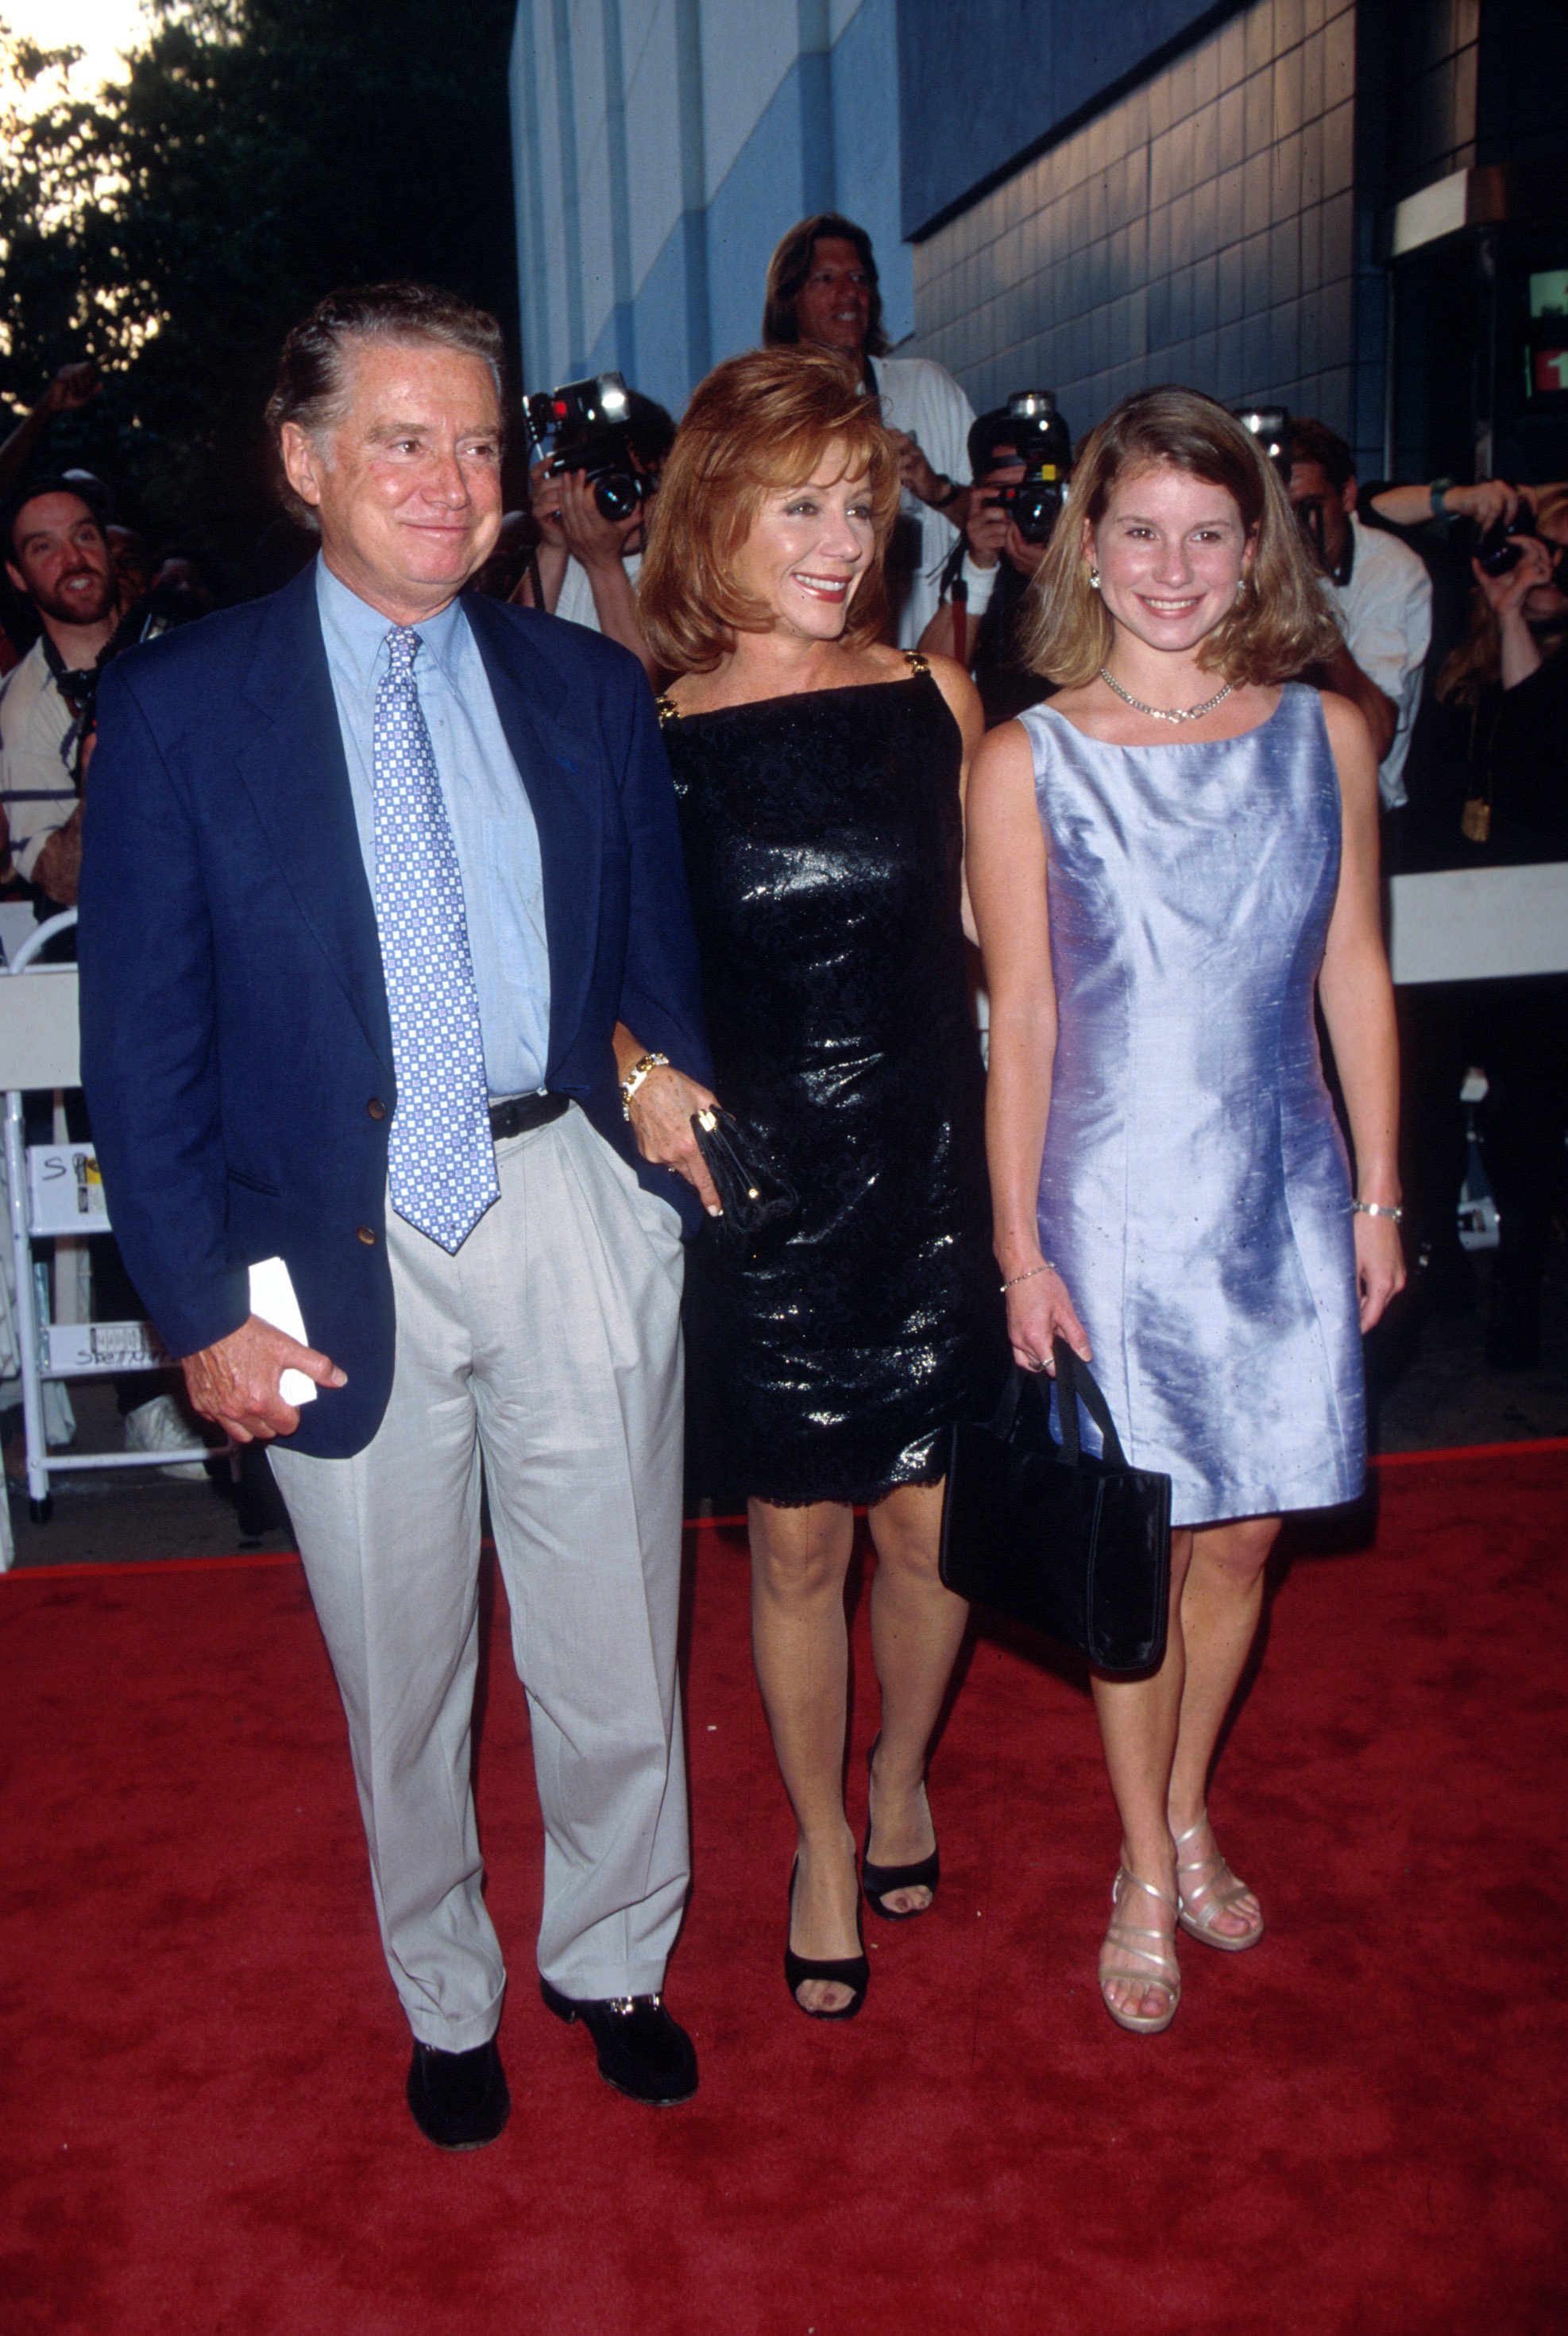 Image Credits: Getty Images | Regis and wife Joy were partners in crime